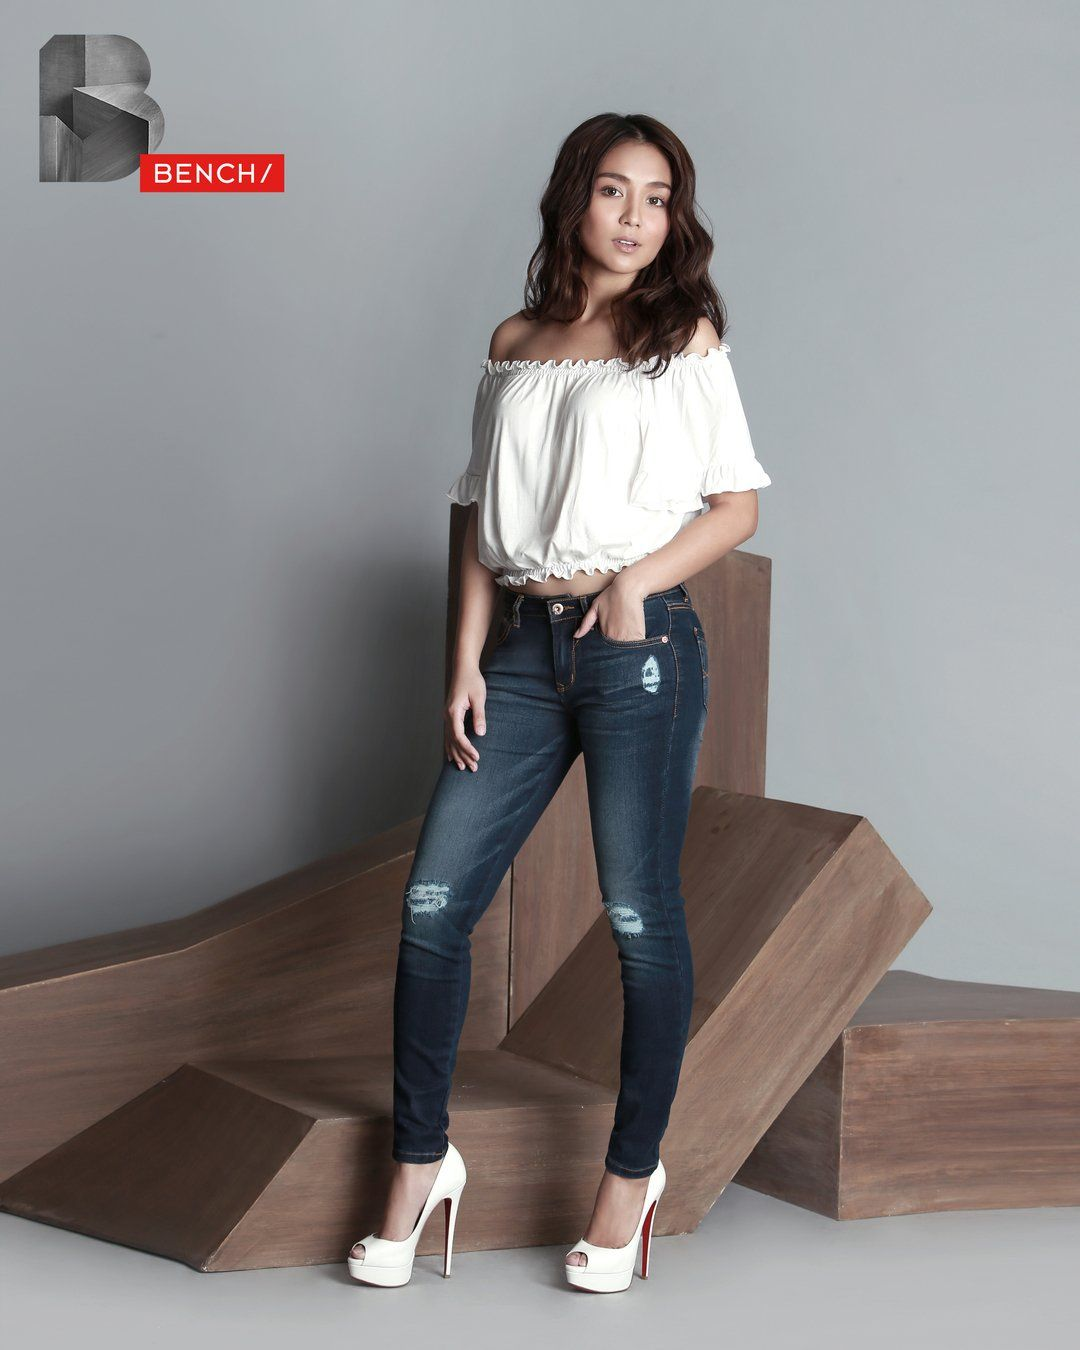 Bench On Twitter Philippines Outfit Fashion Kathryn Bernardo